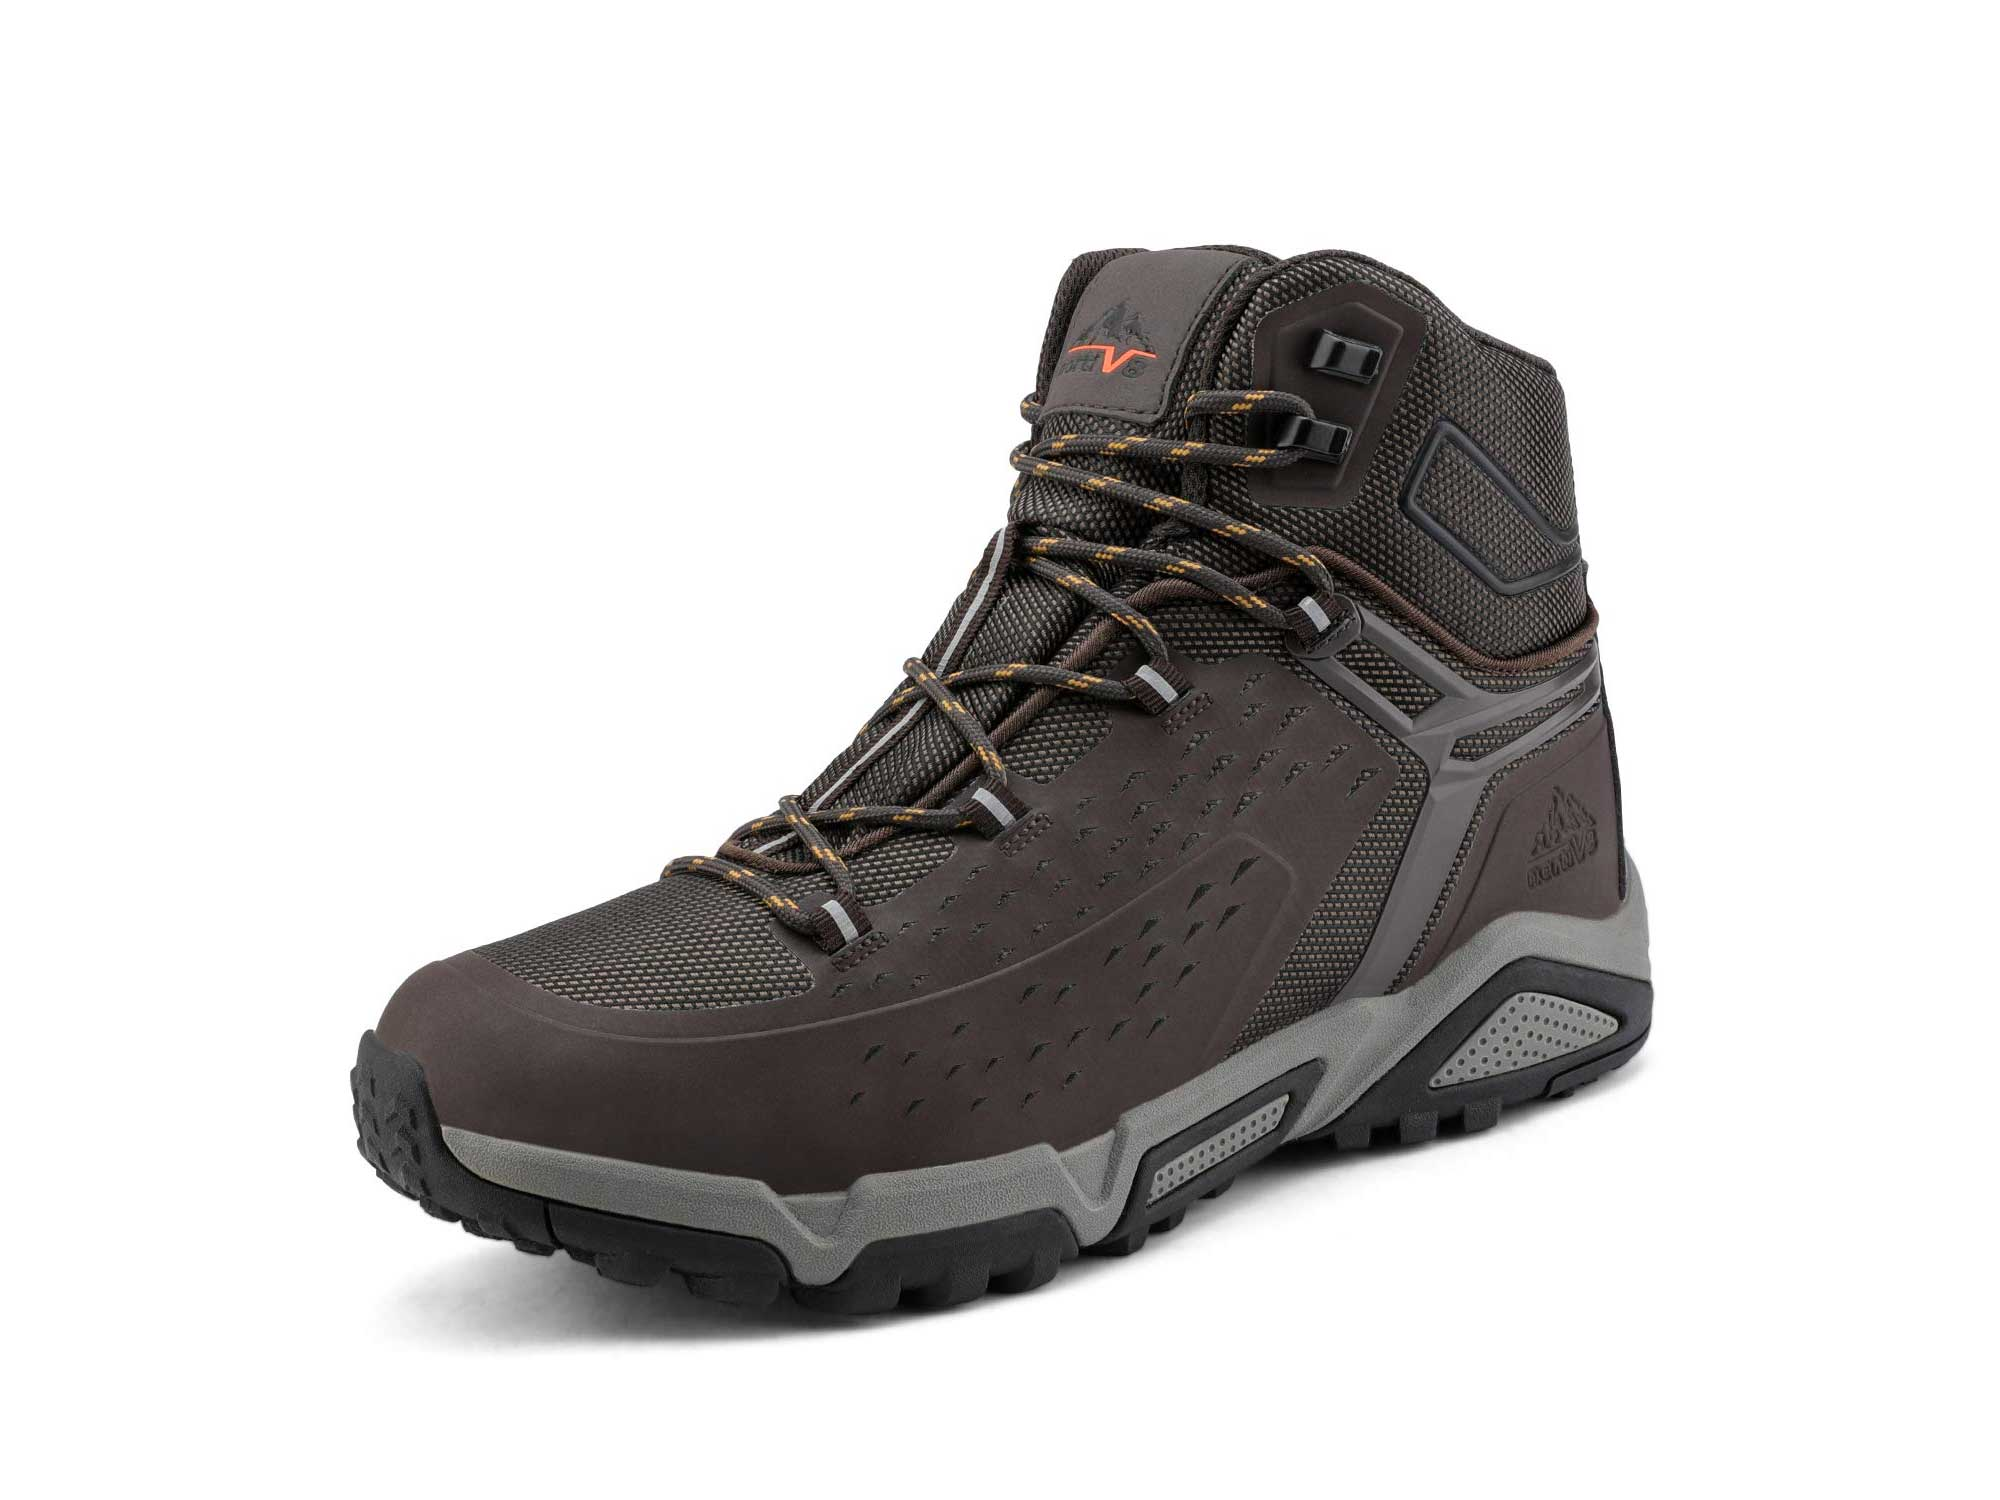 Nortiv waterproof hiking boot with rubber toe cap